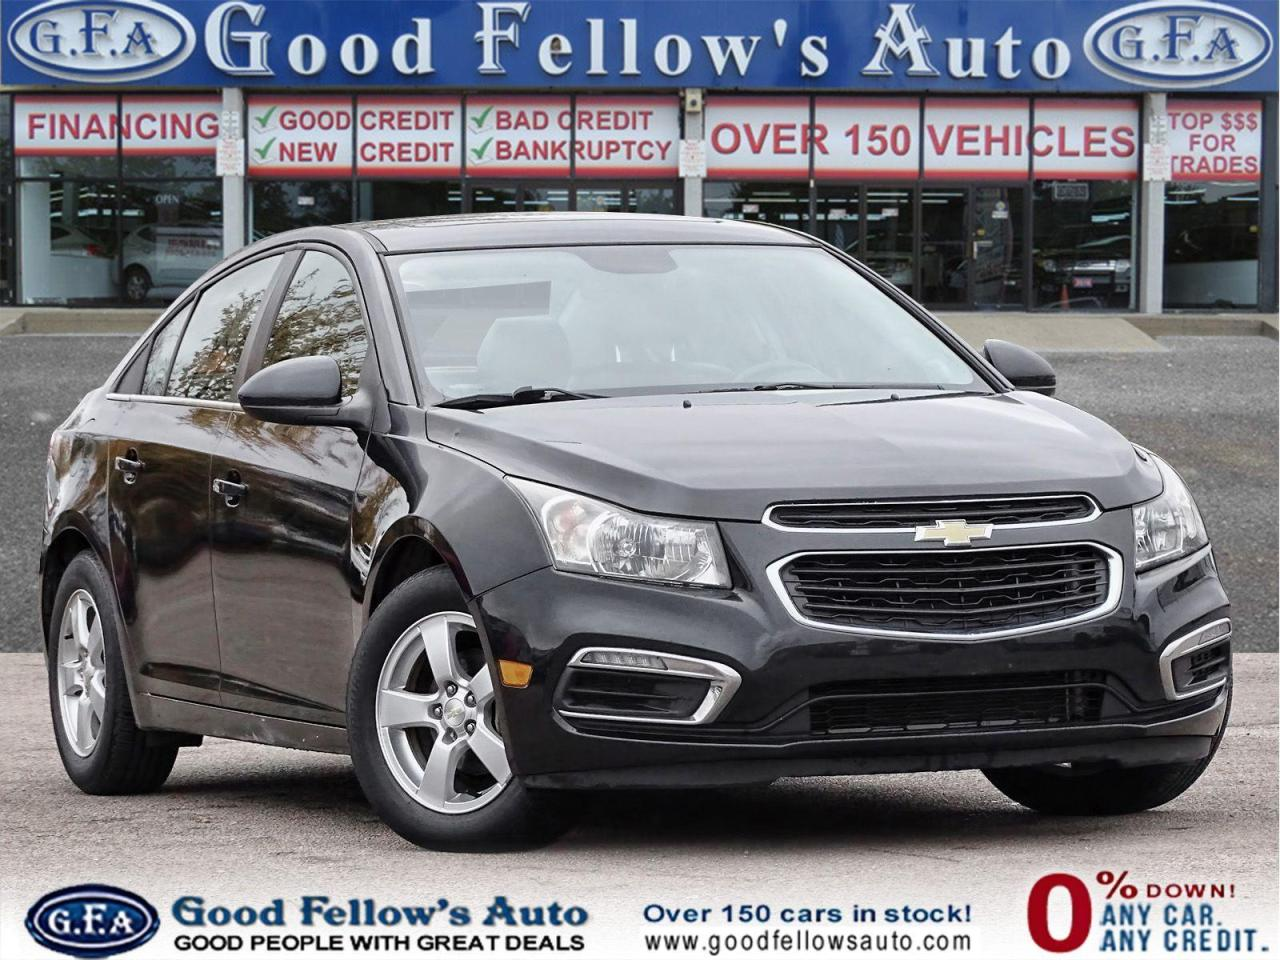 used 2016 Chevrolet Cruze car, priced at $12,900